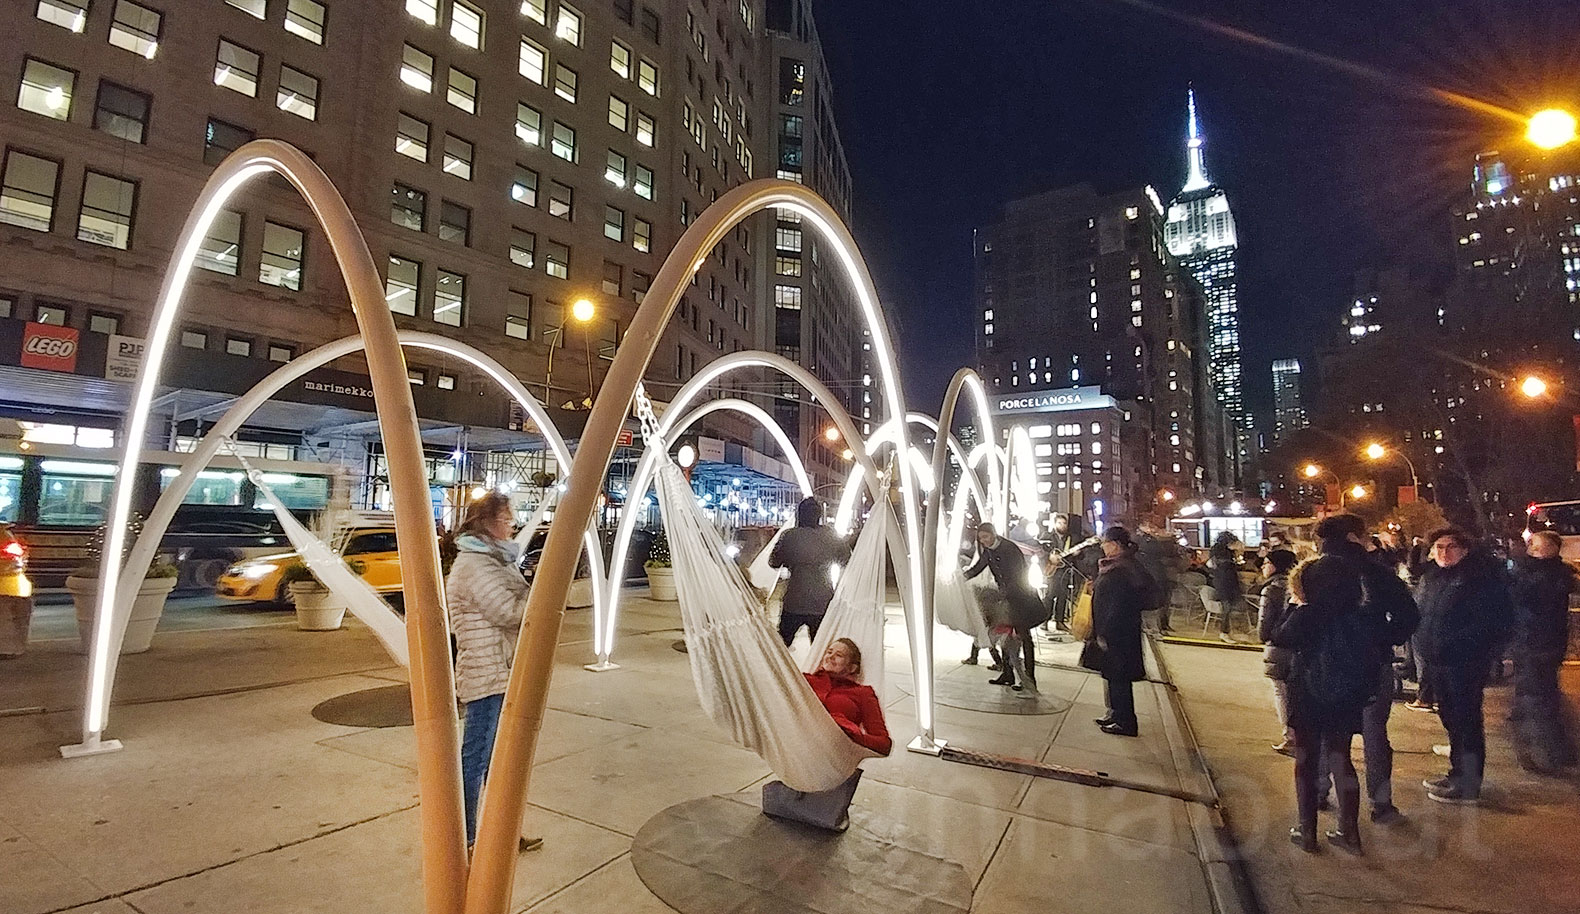 Come swing on these holiday hammocks at the new Flatiron Sky-Line LED light installation